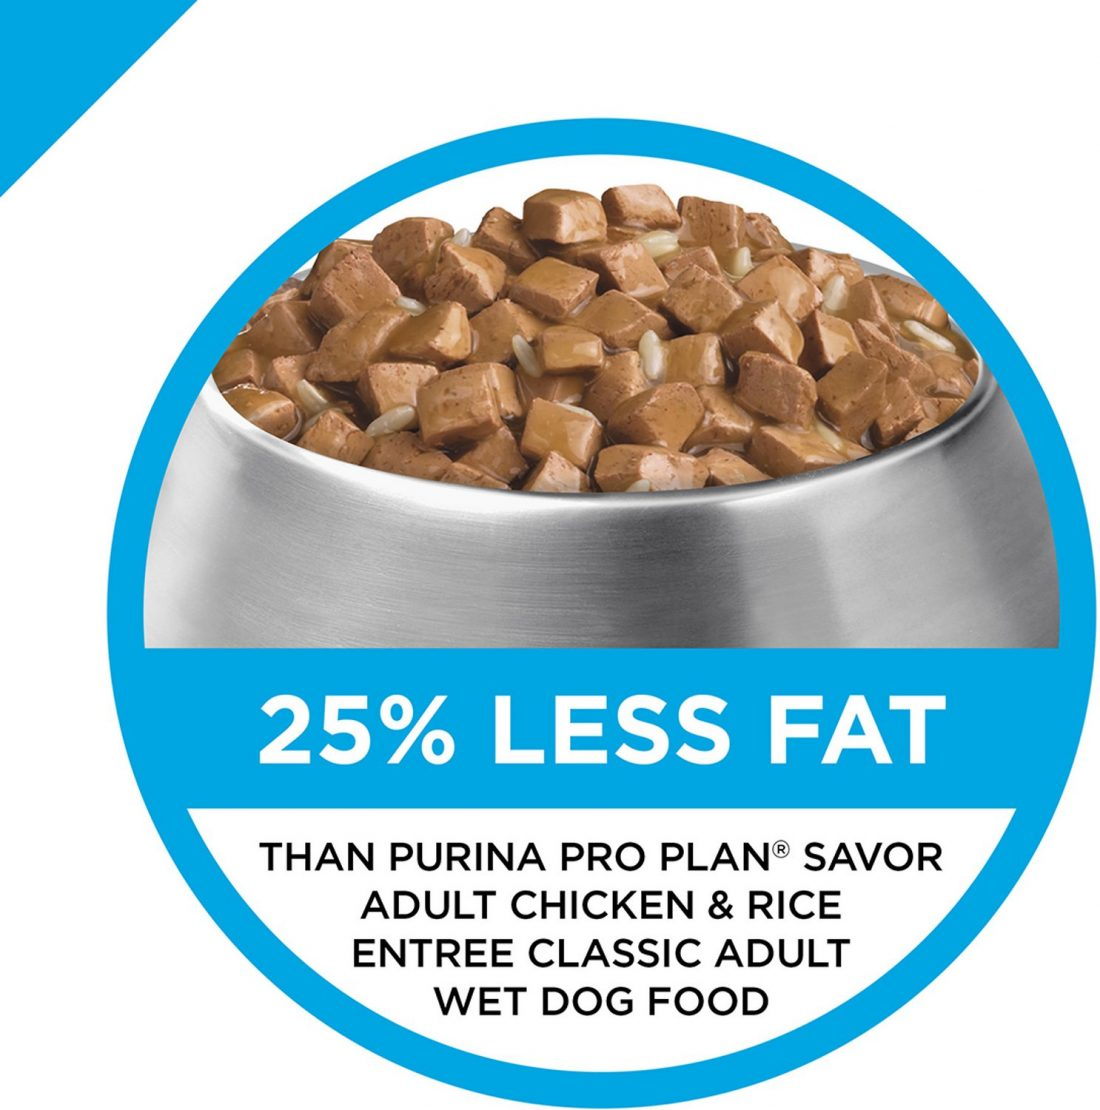 Purina Pro Plan Focus Weight Management Turkey and Rice Entree Morsels in Gravy Adult Wet Dog Food